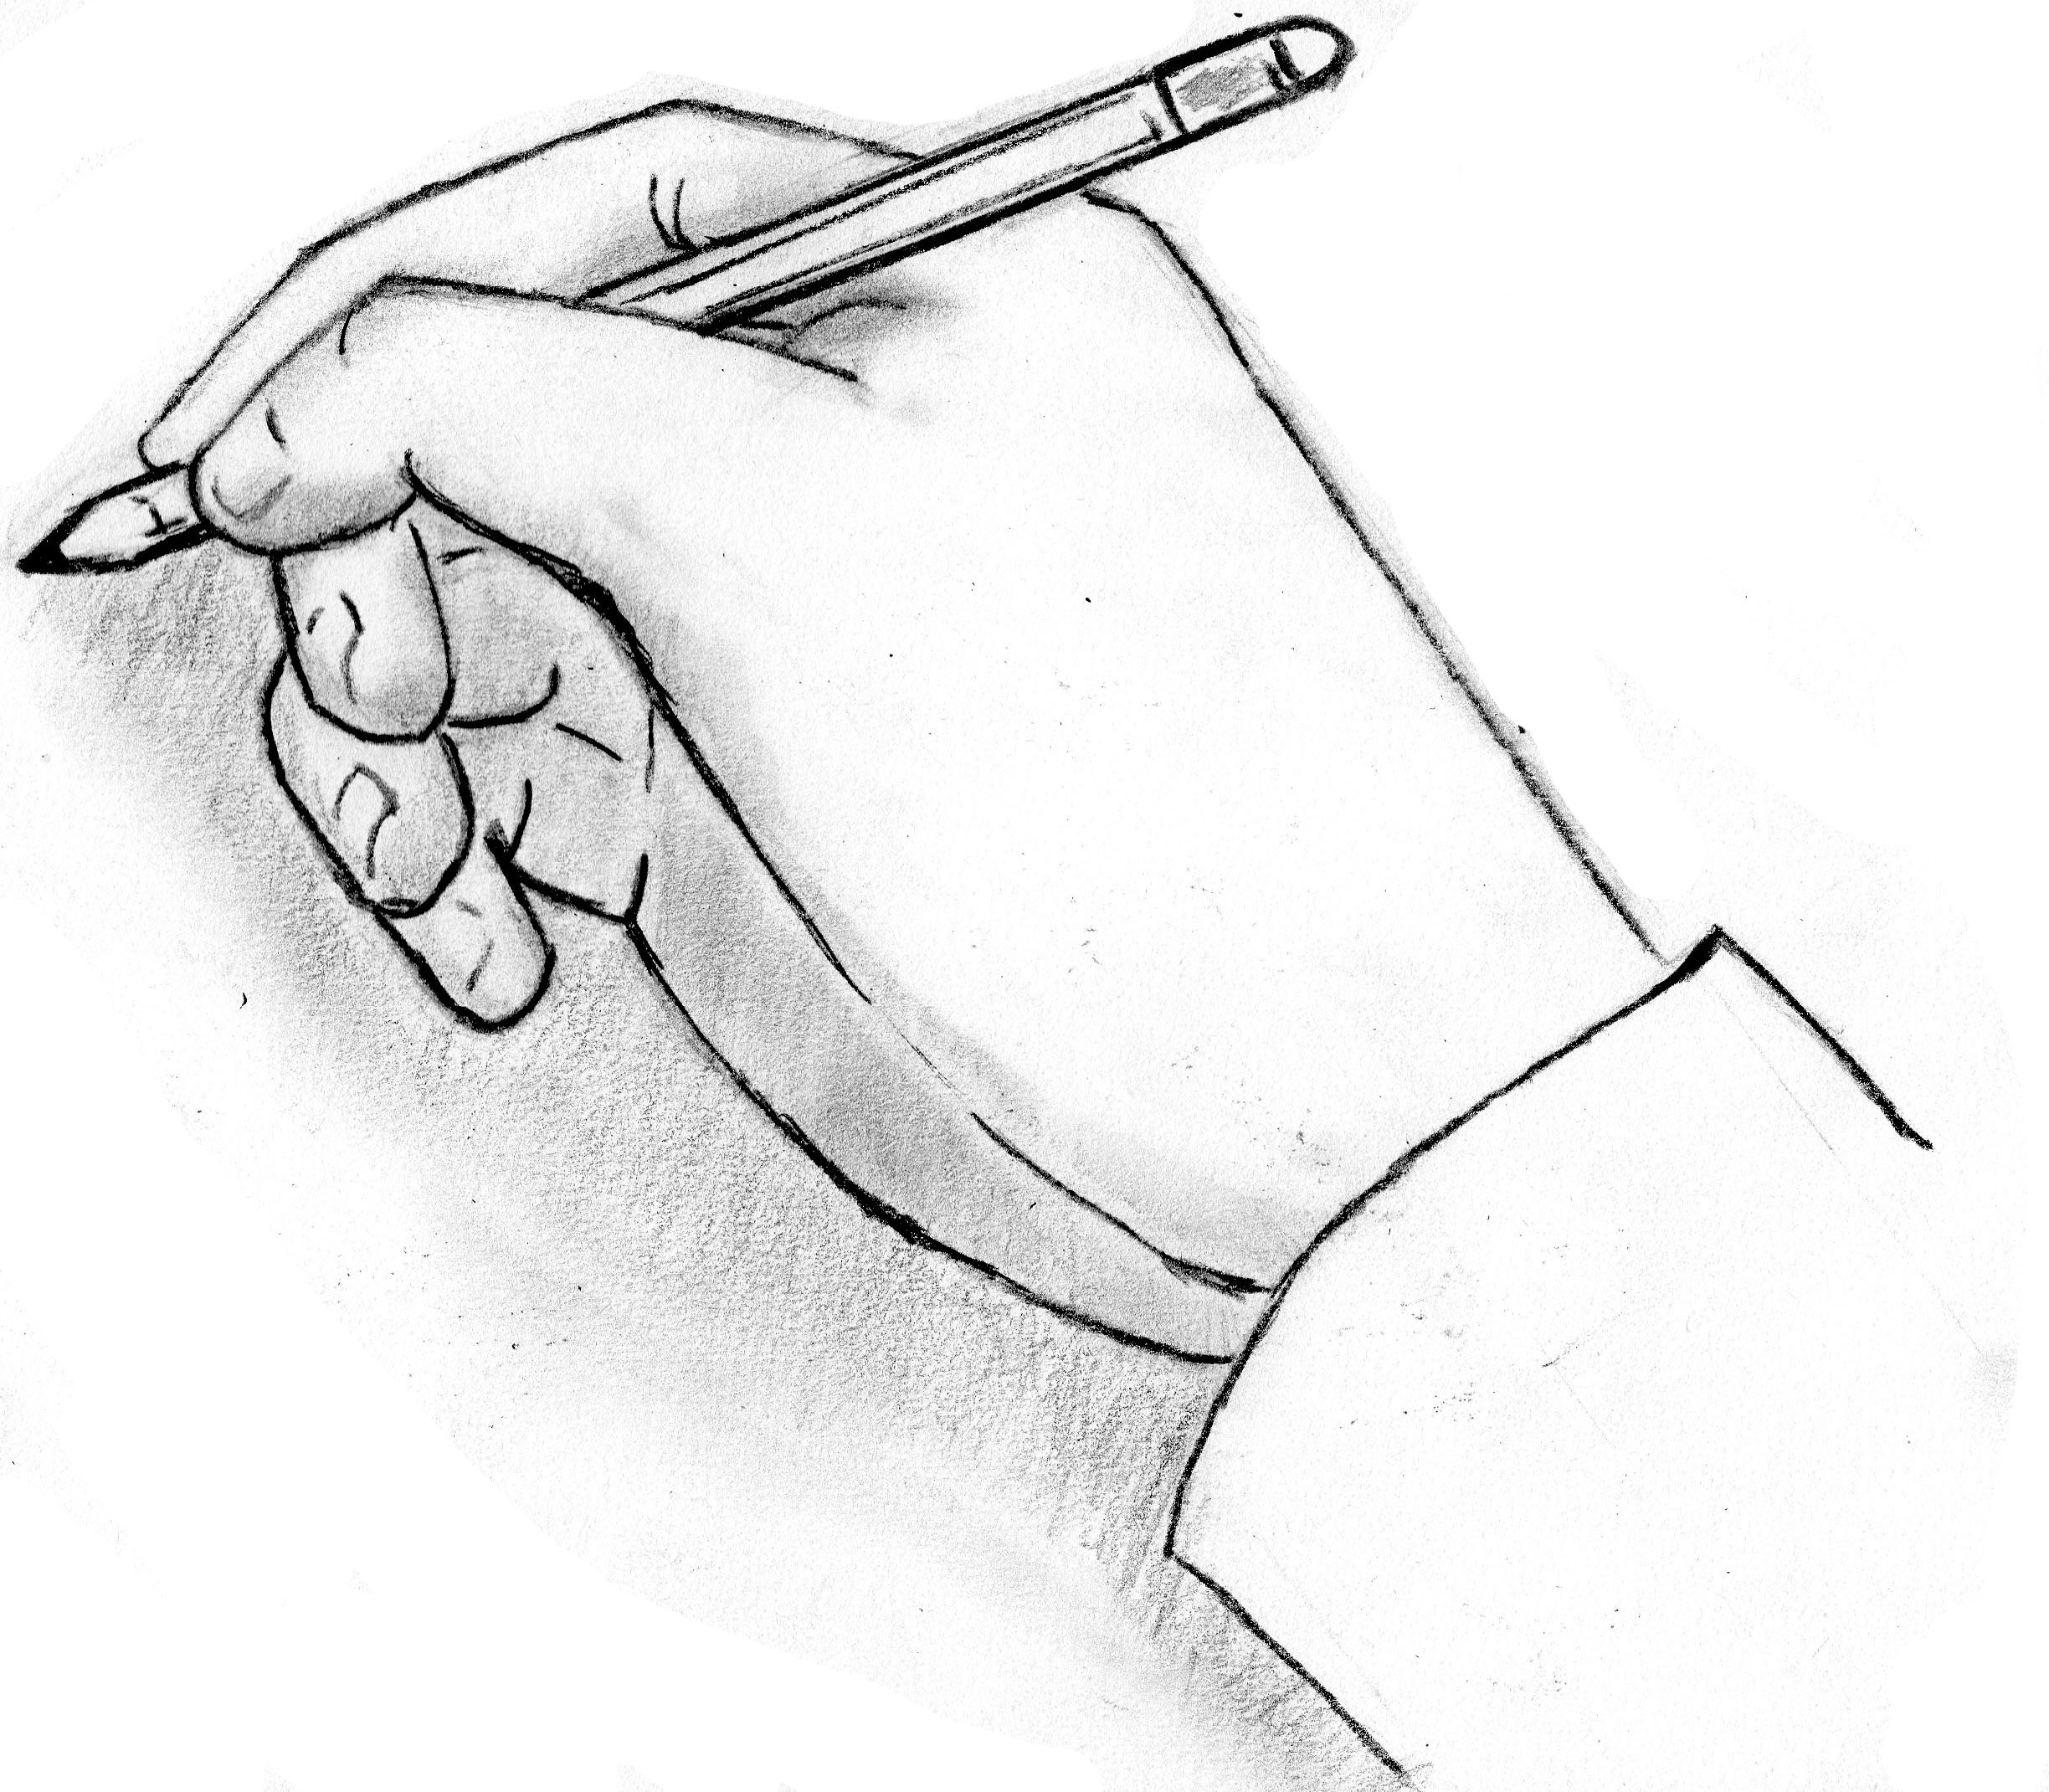 Drawn pencil basic At Library County Workshop 101